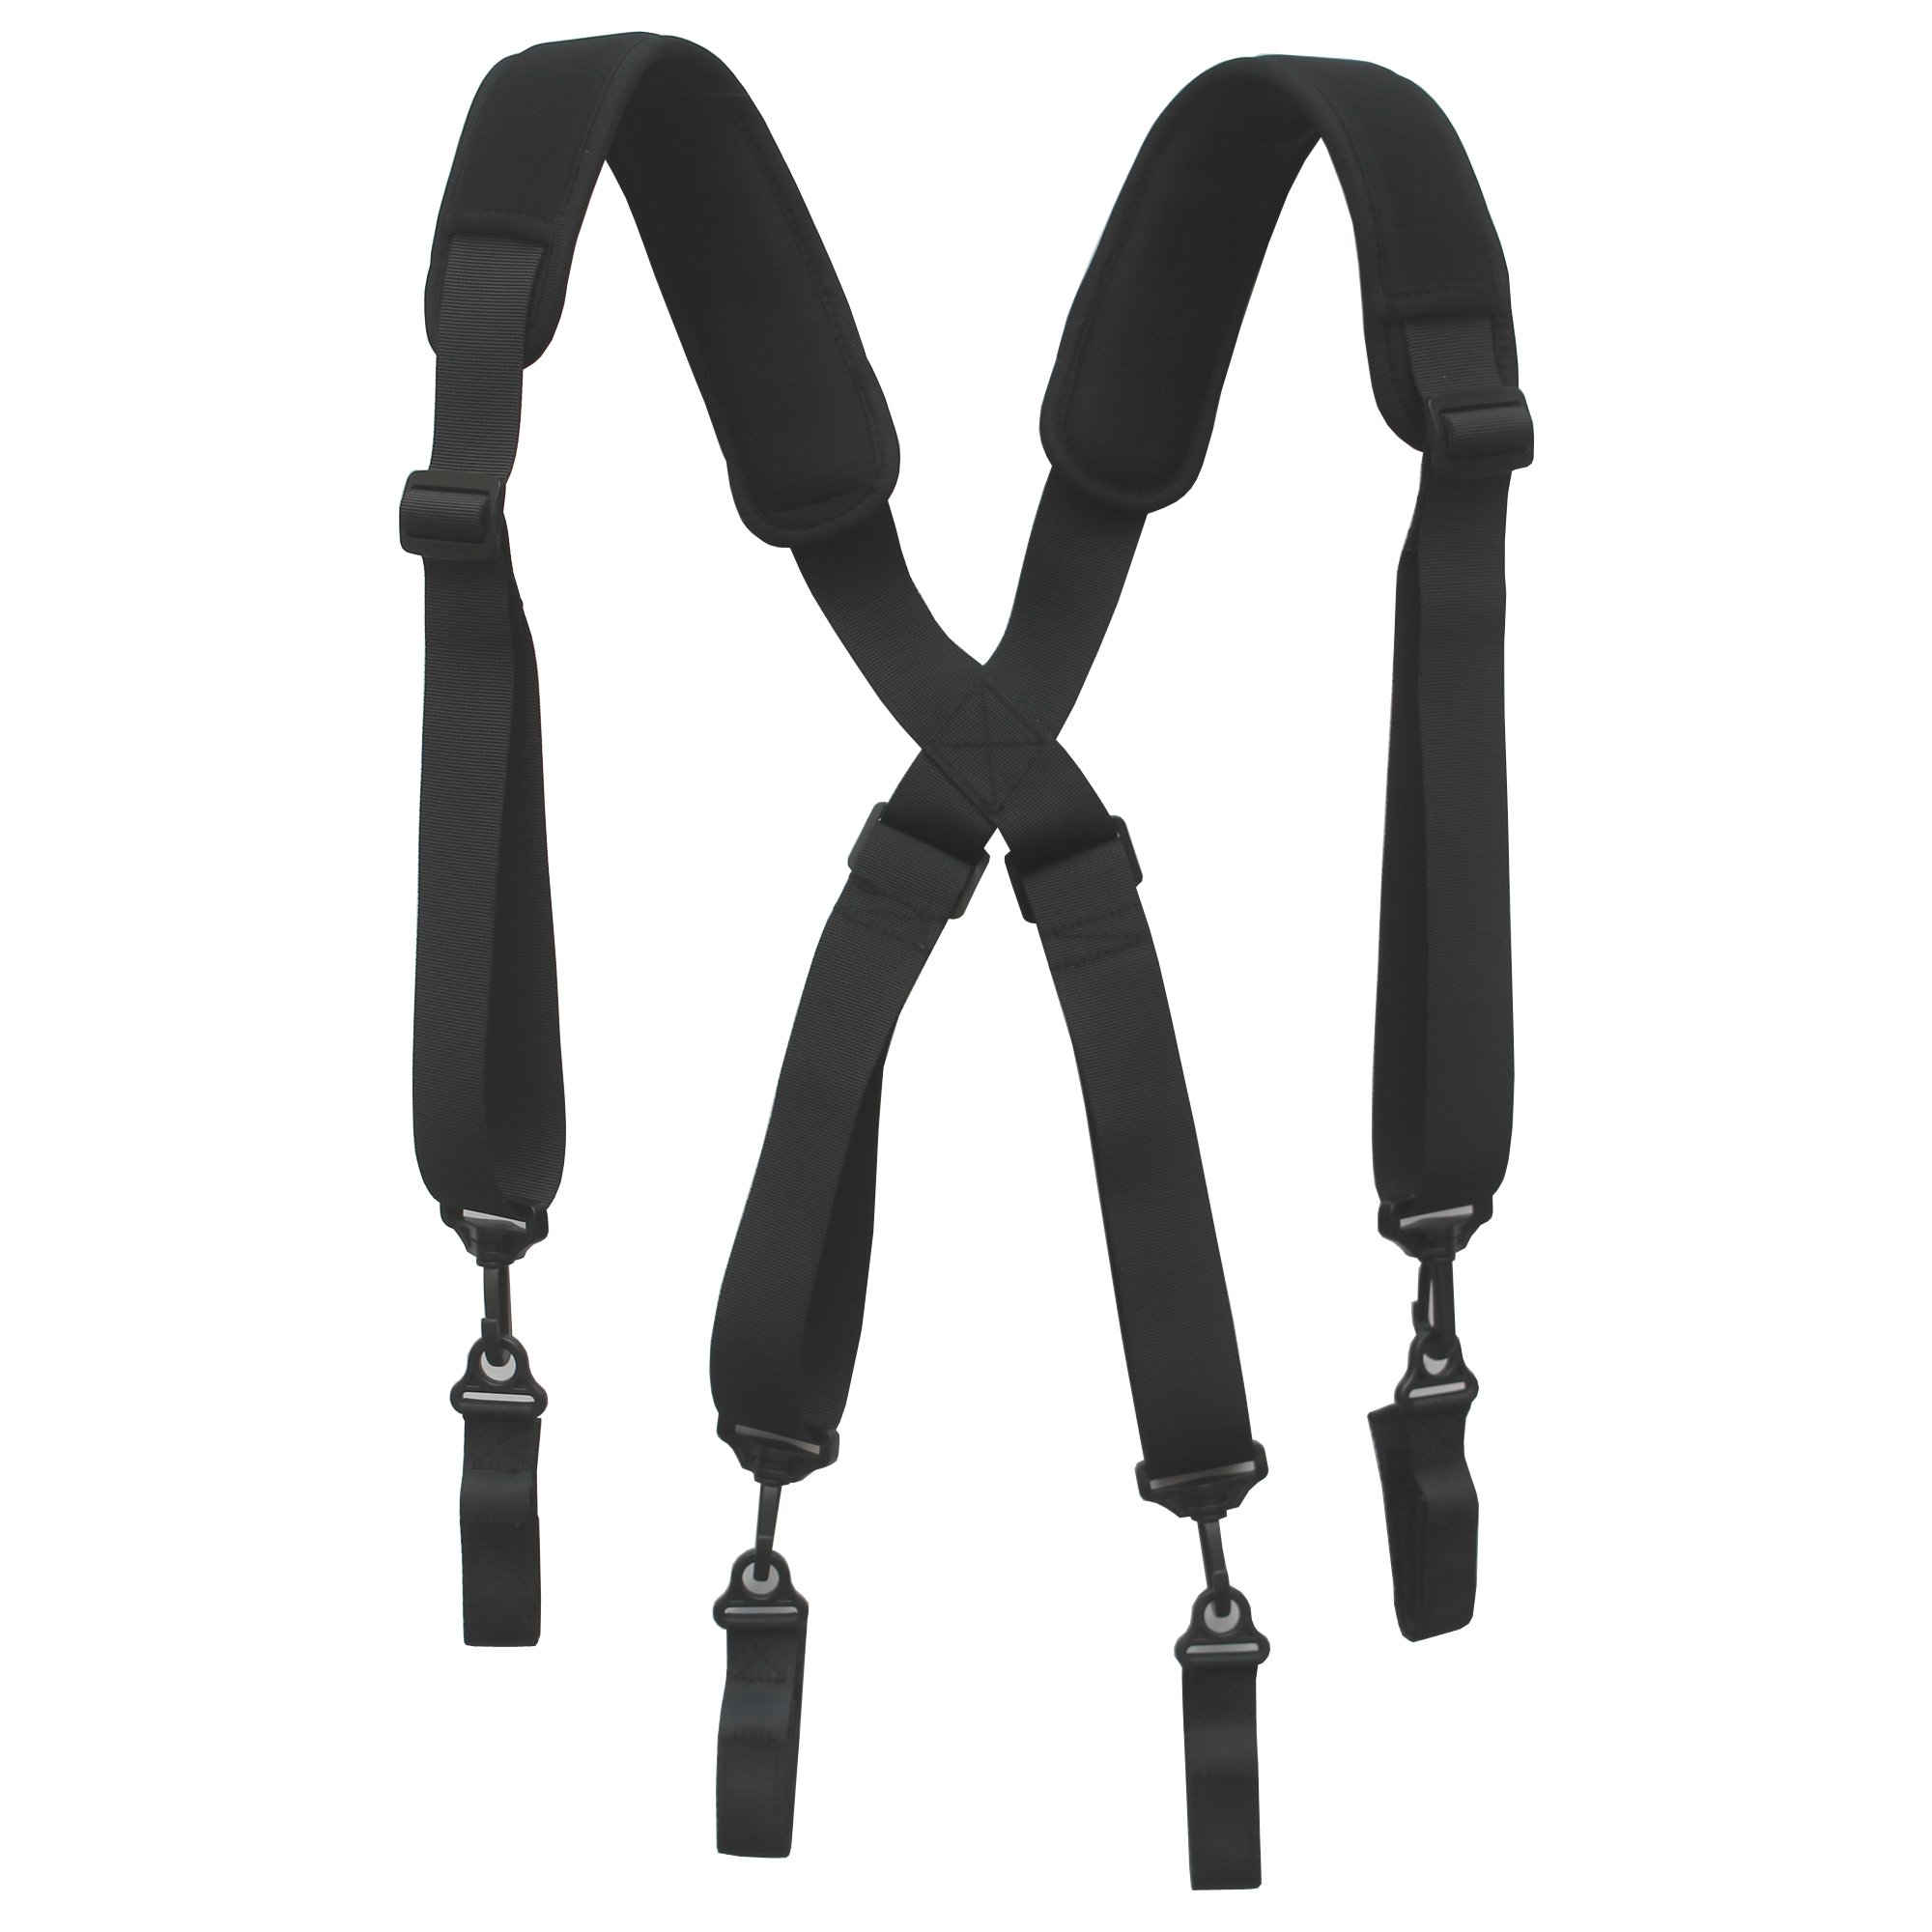 YYST Tool Belt Suspender Duty Belt Suspender Tool Harness with Neoprene Comfortable Pad - 4 Loop Attachments by YYST